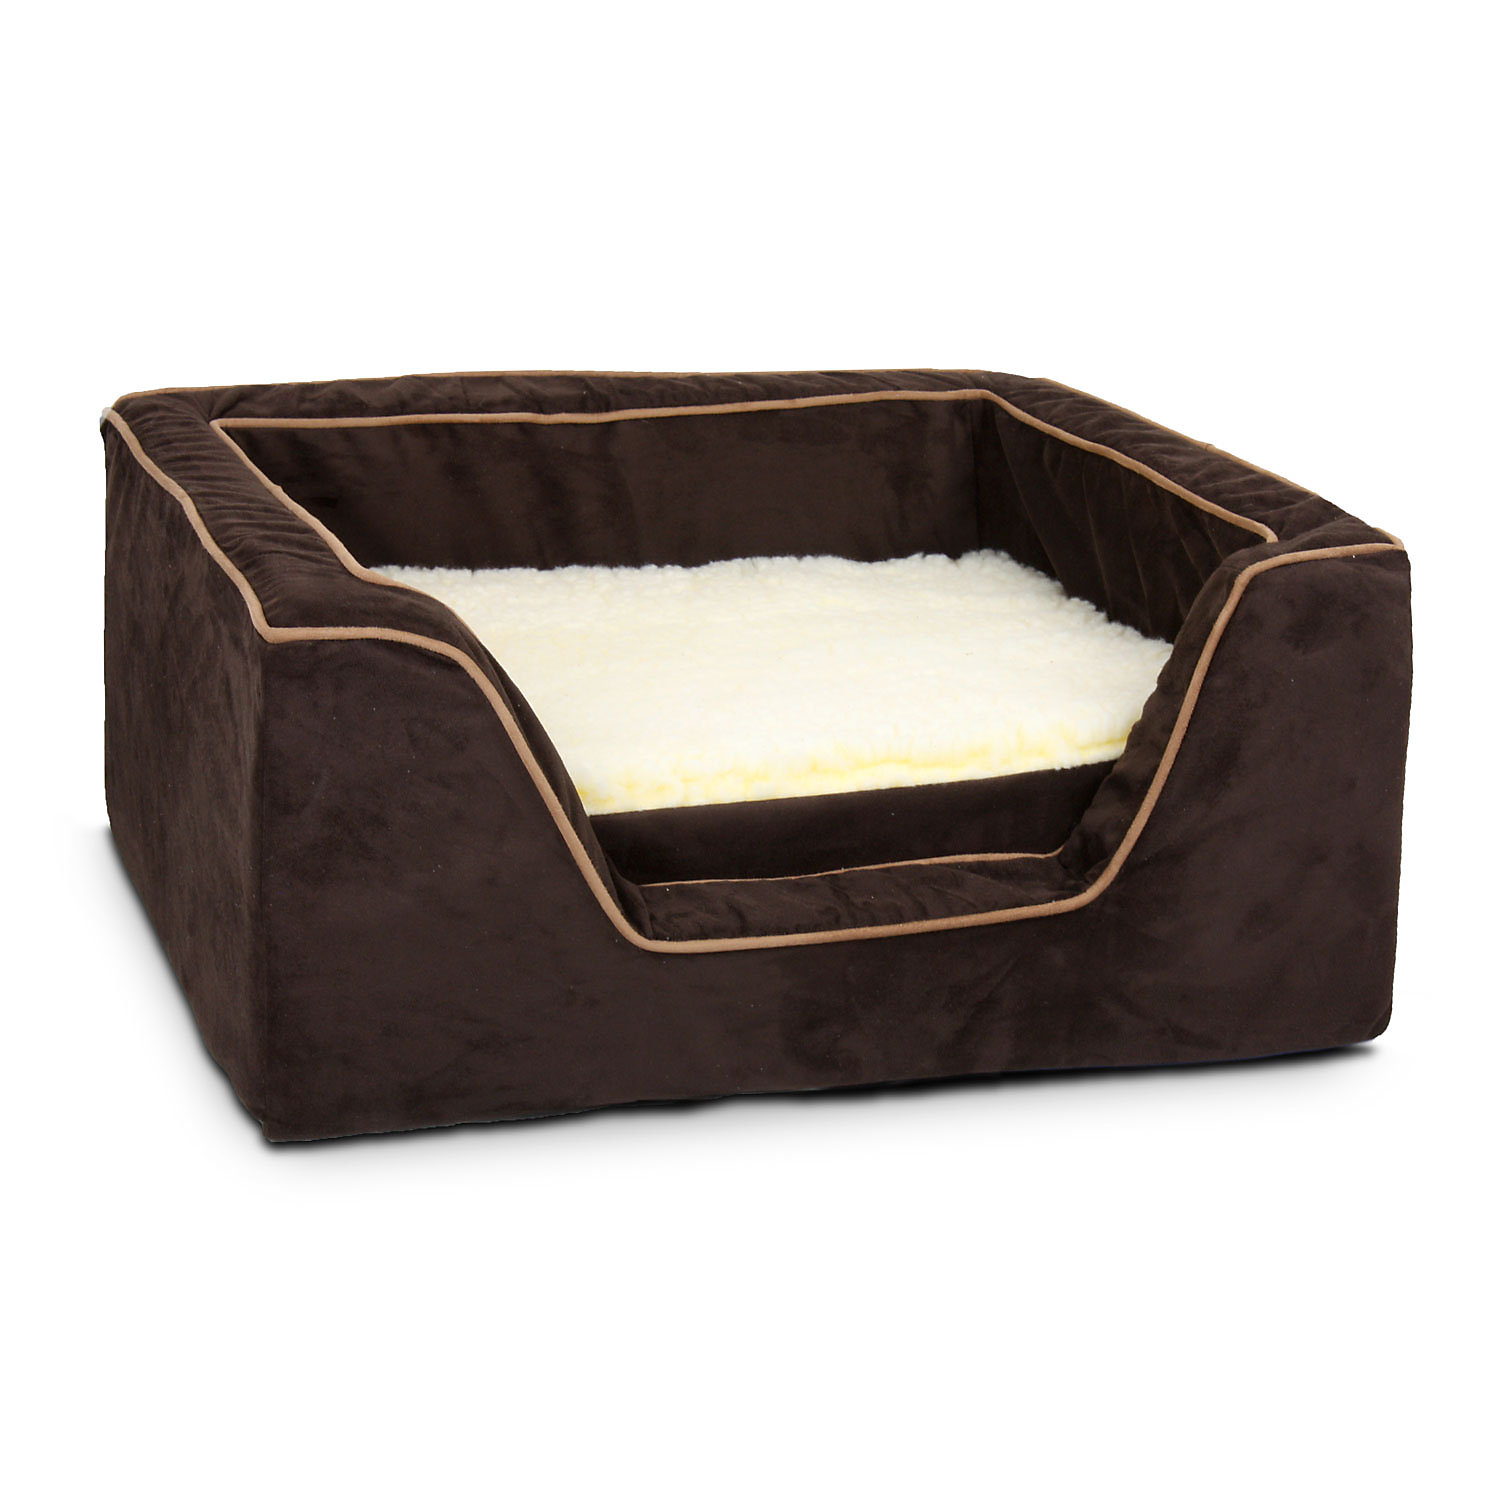 Snoozer Luxury Square Bed with Memory Foam in Hot Fudge with Cafe Cording 27 L X 23 W X 12 H Large Brown